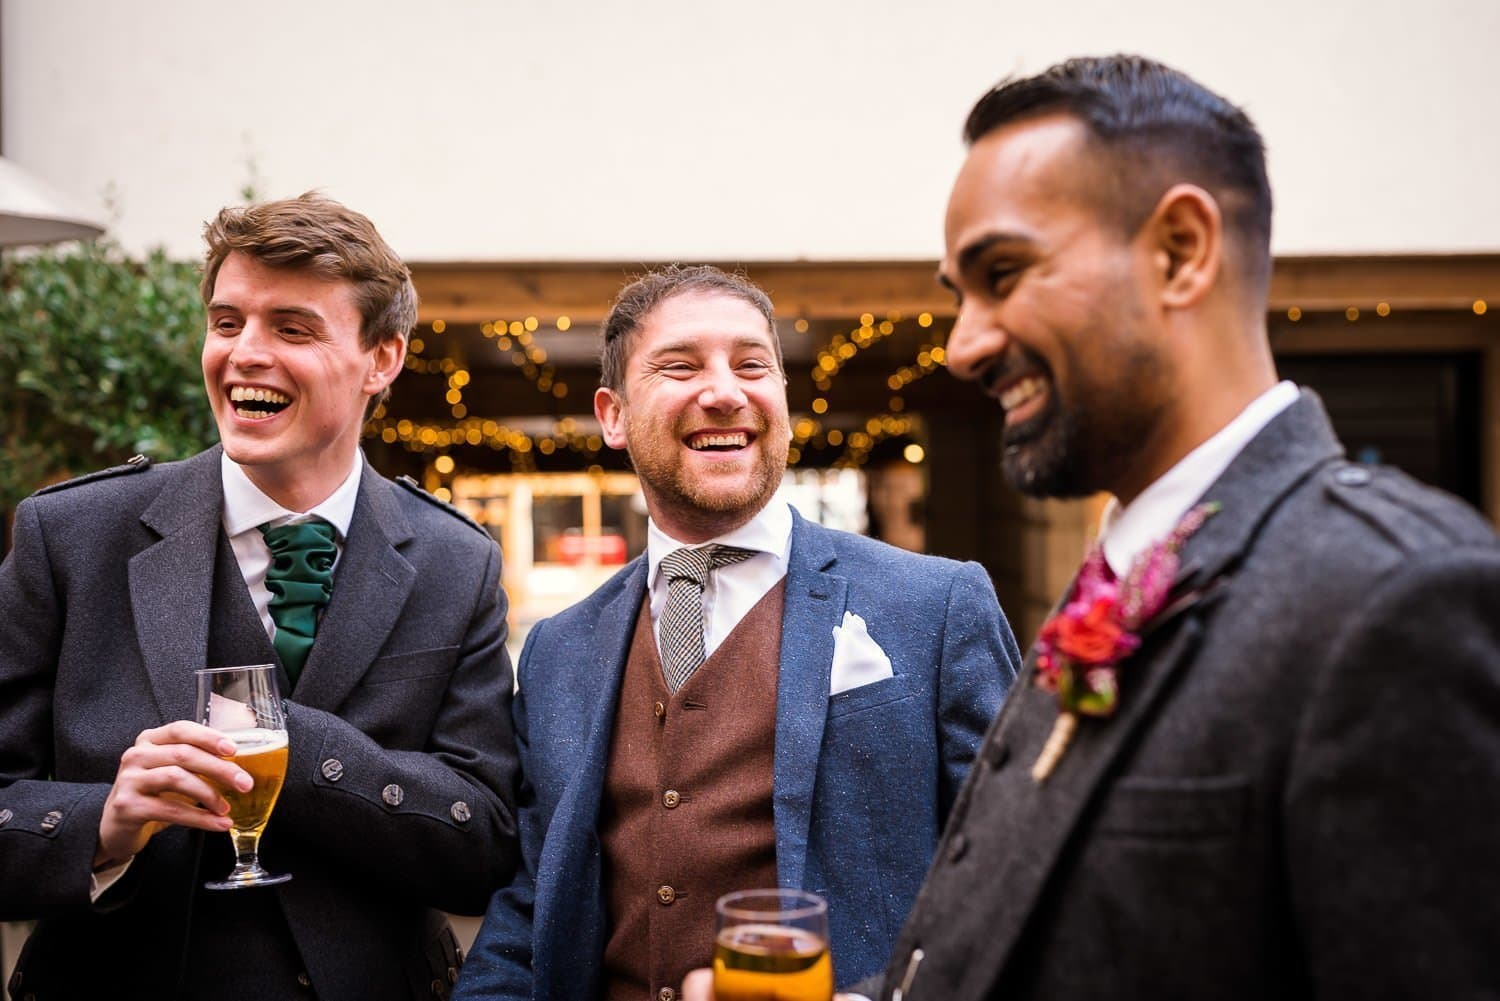 Groom and Groomsmen at Hotel Du Vin Ediburgh